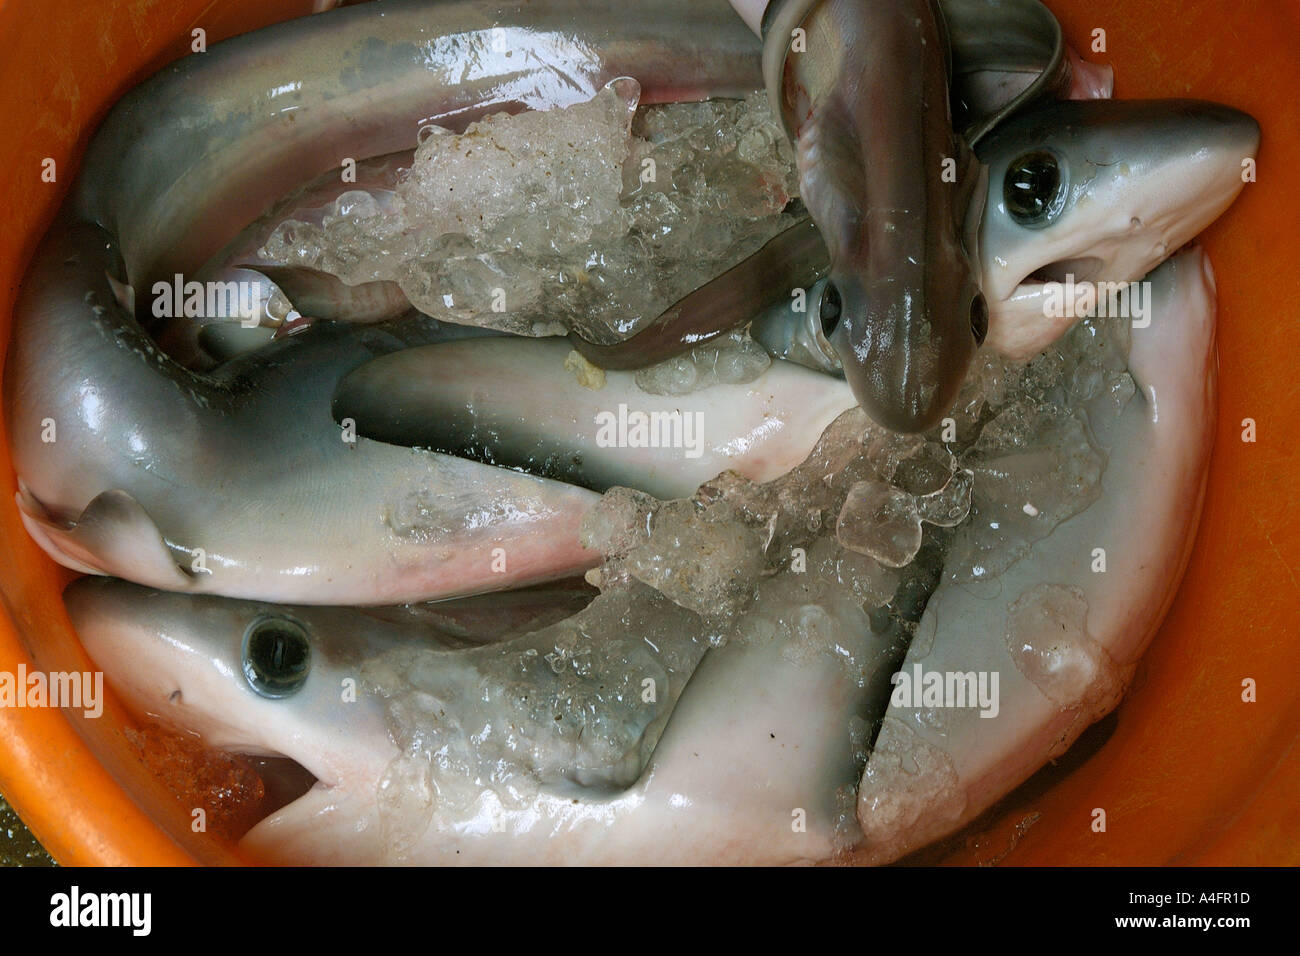 shark fin stock photos shark fin stock images alamy thresher shark pups alopias sp nanfang ao fish market suao taipei taiwan republic of